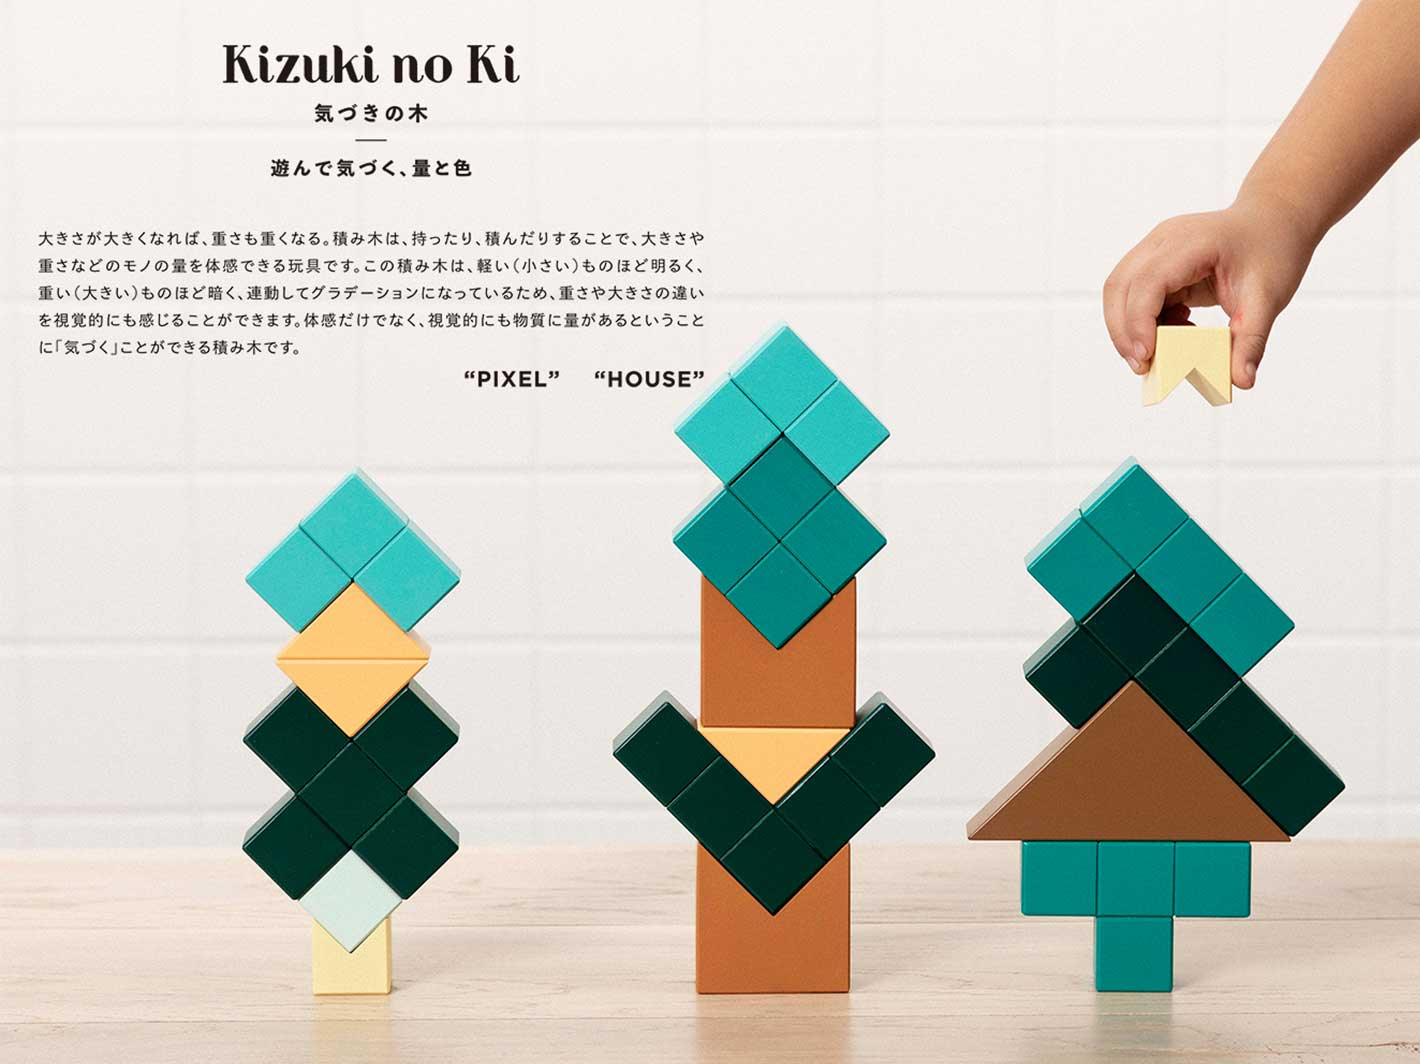 Kizuki no Ki Blocks - House